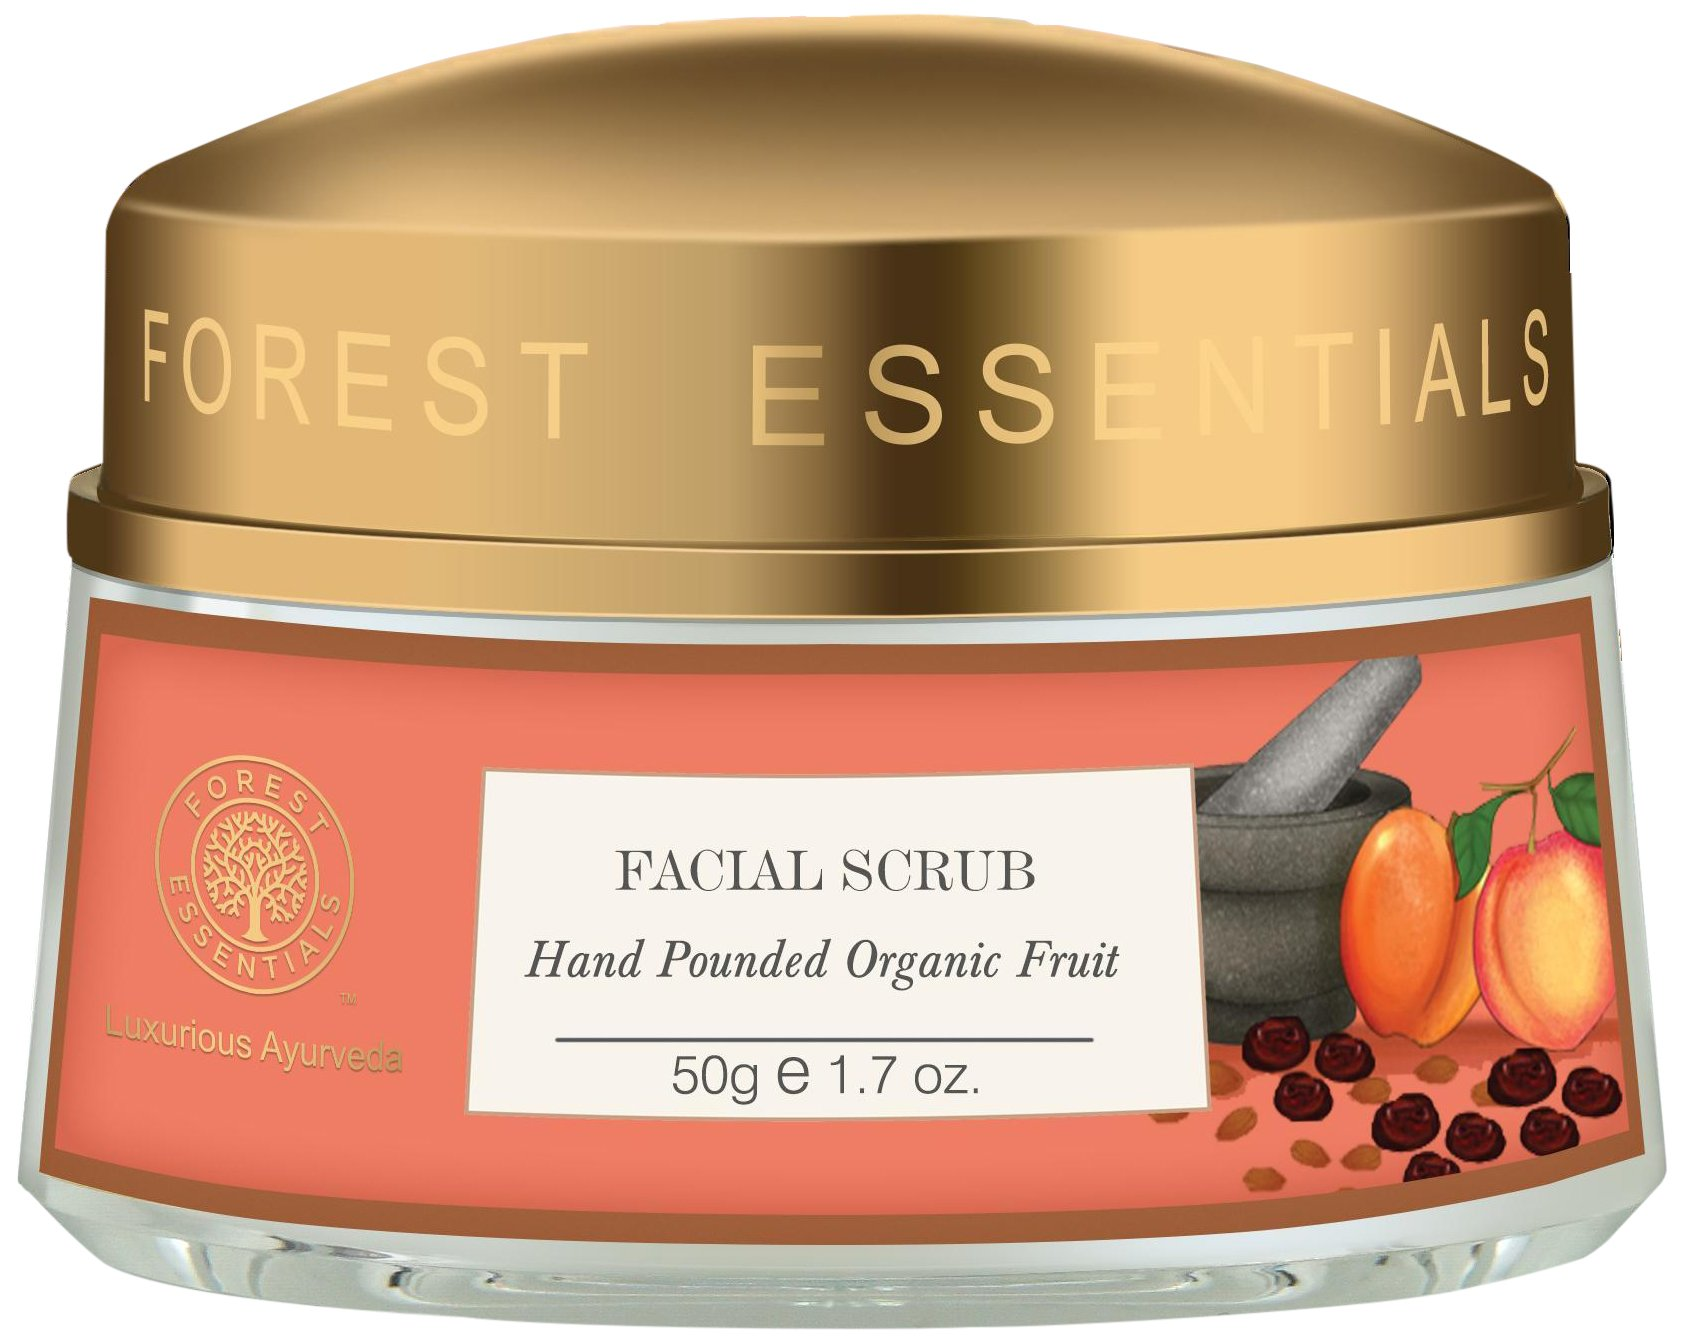 Forest Essentials Hand Pounded Organic Fruit Scrub - 50g